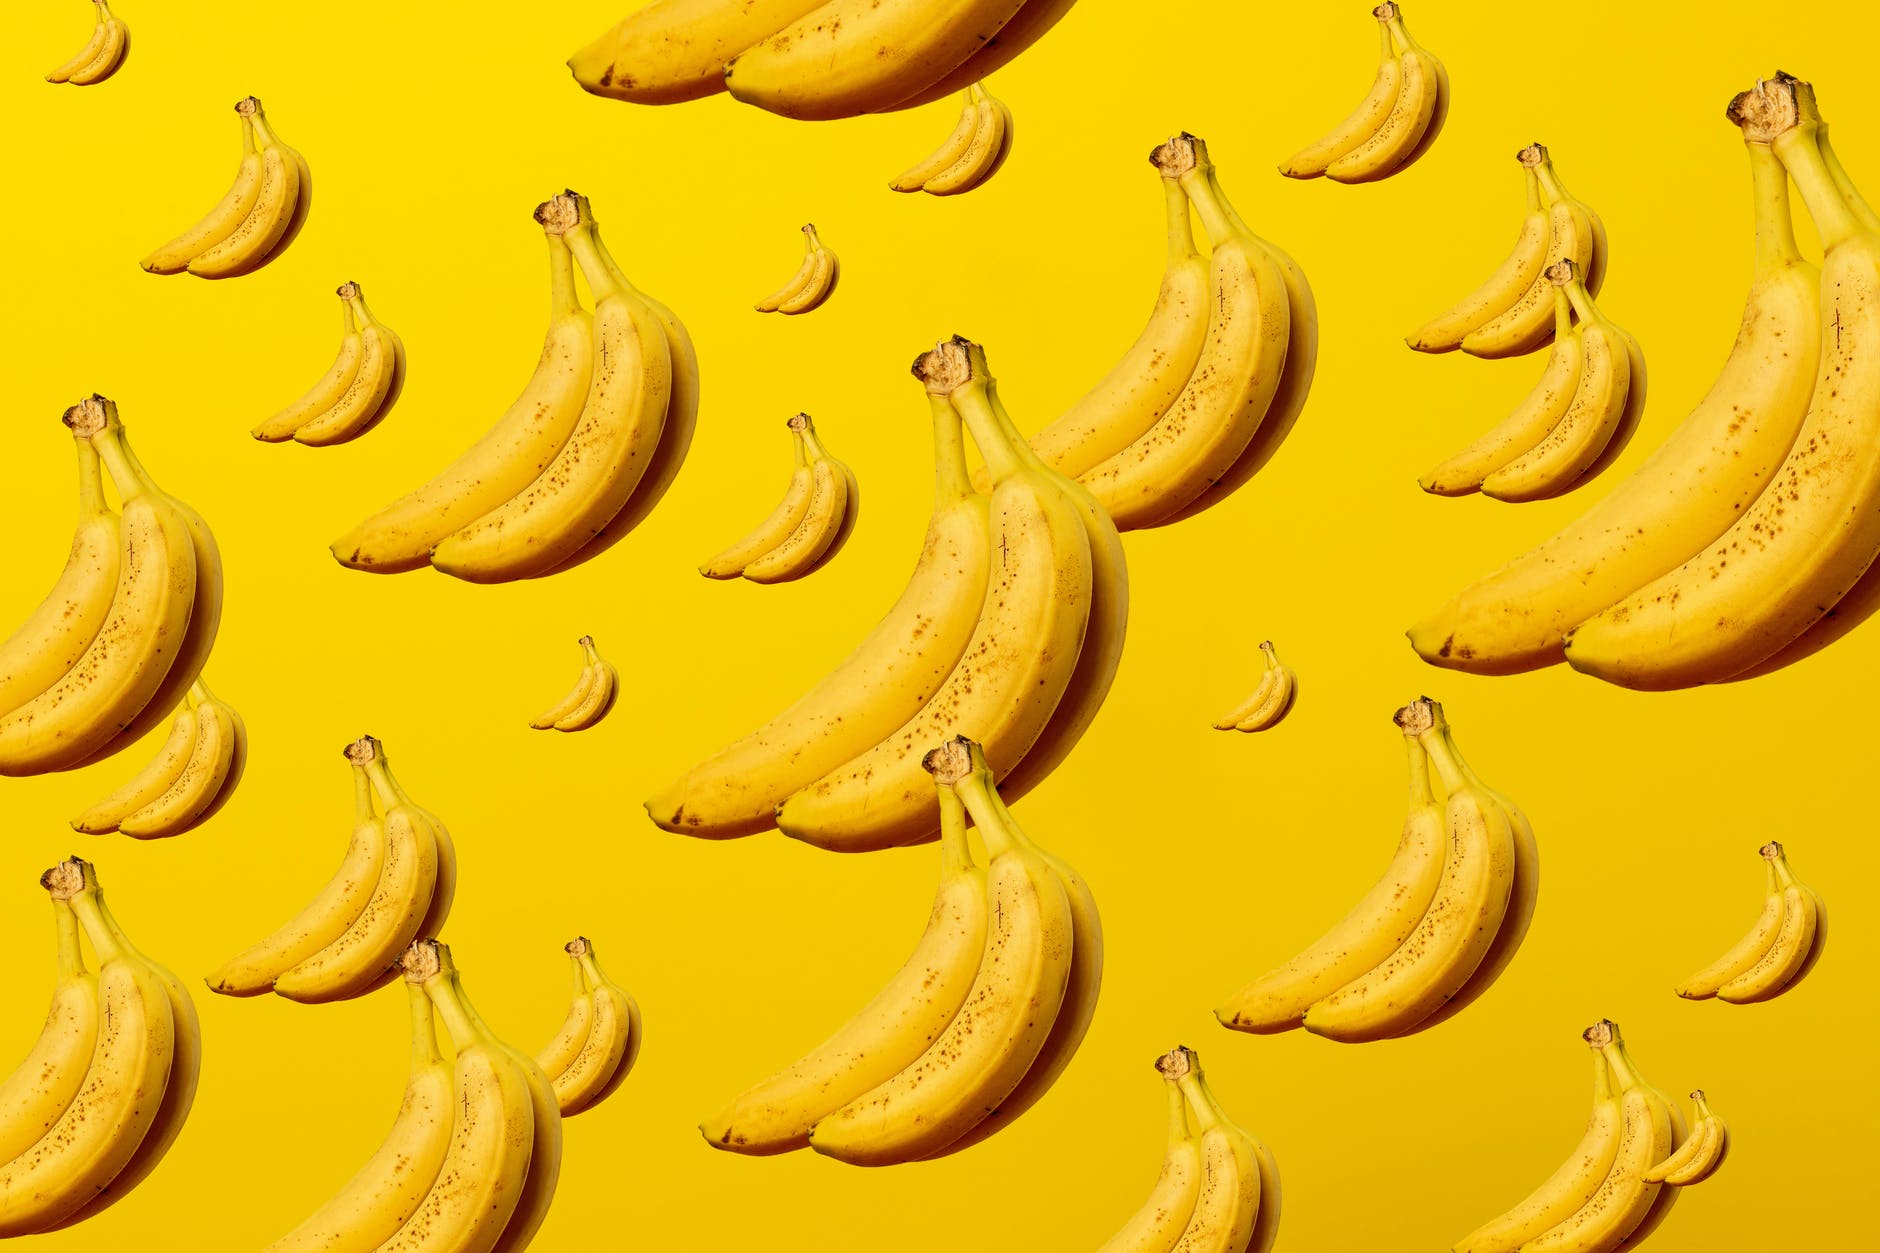 Banana graphic